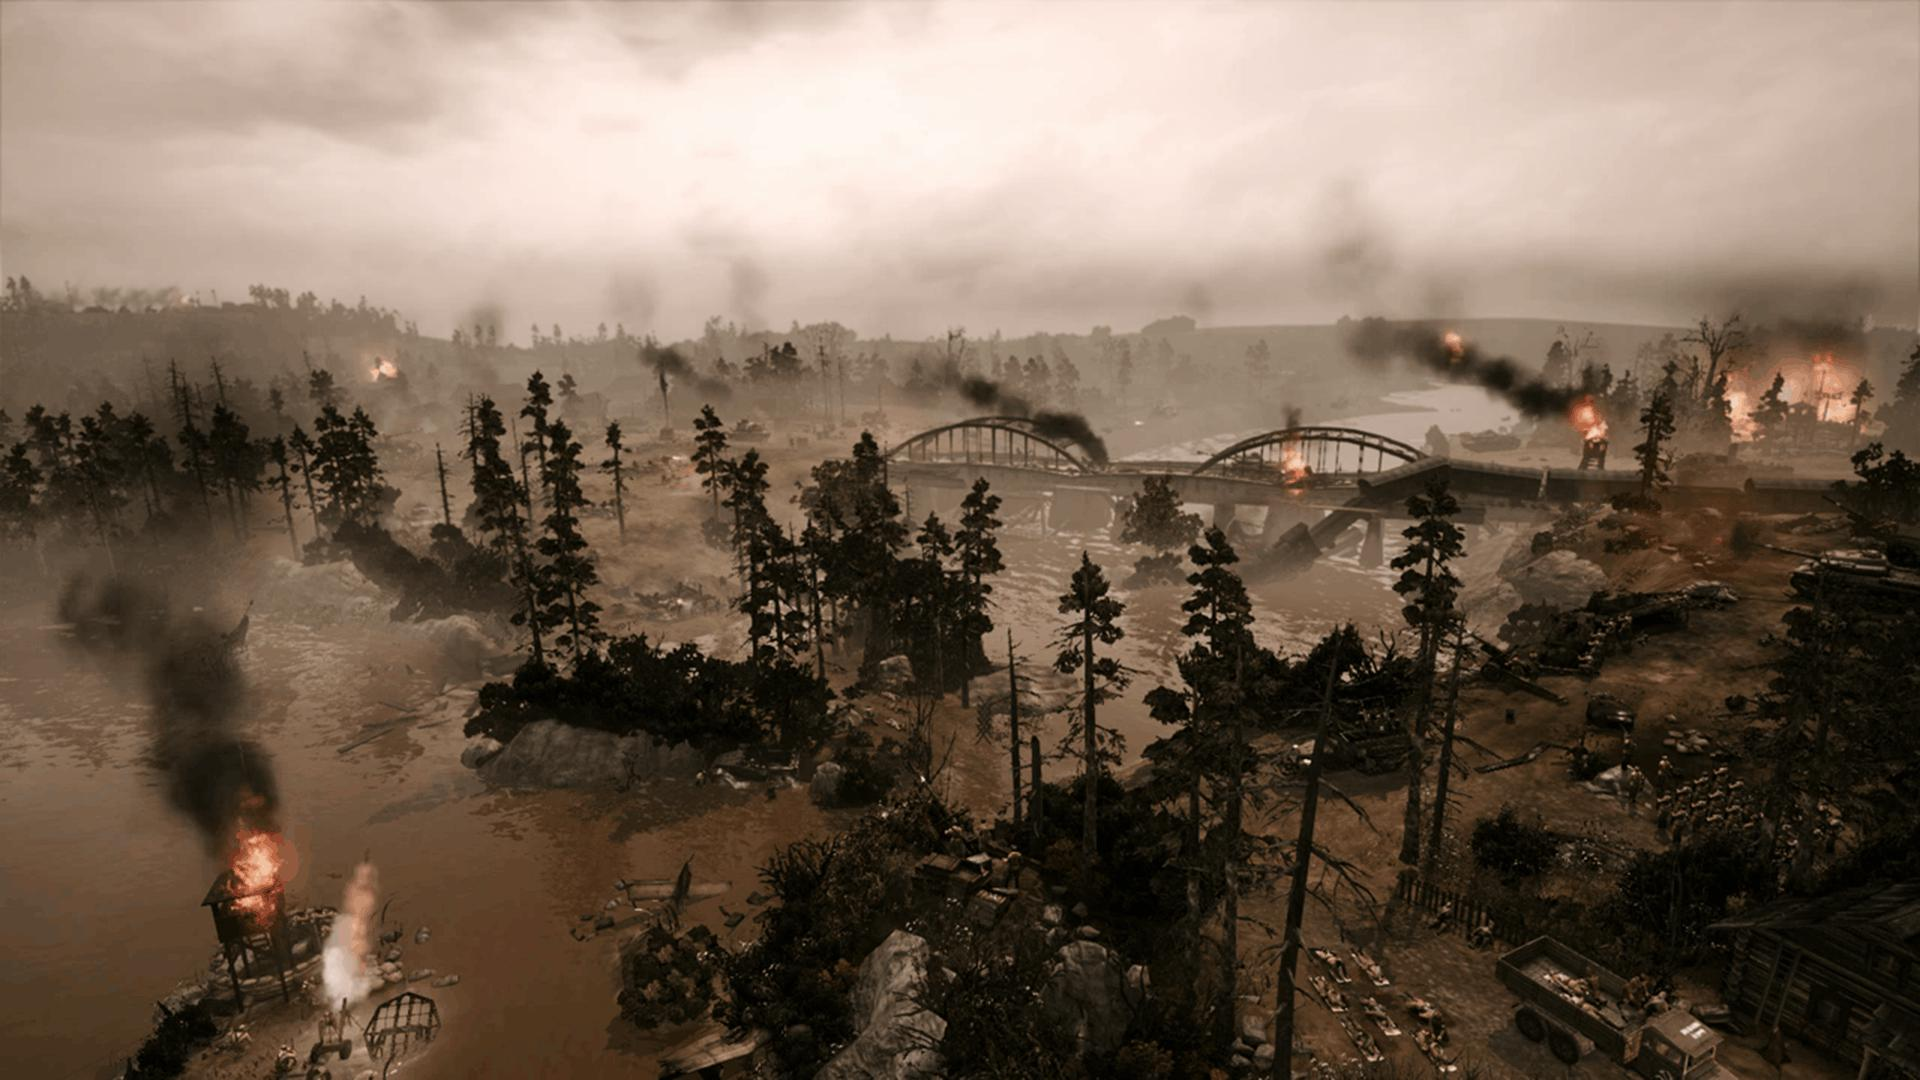 Wallpapers fond d 39 ecran pour company of heroes 2 pc 2013 - Walpepar photos ...